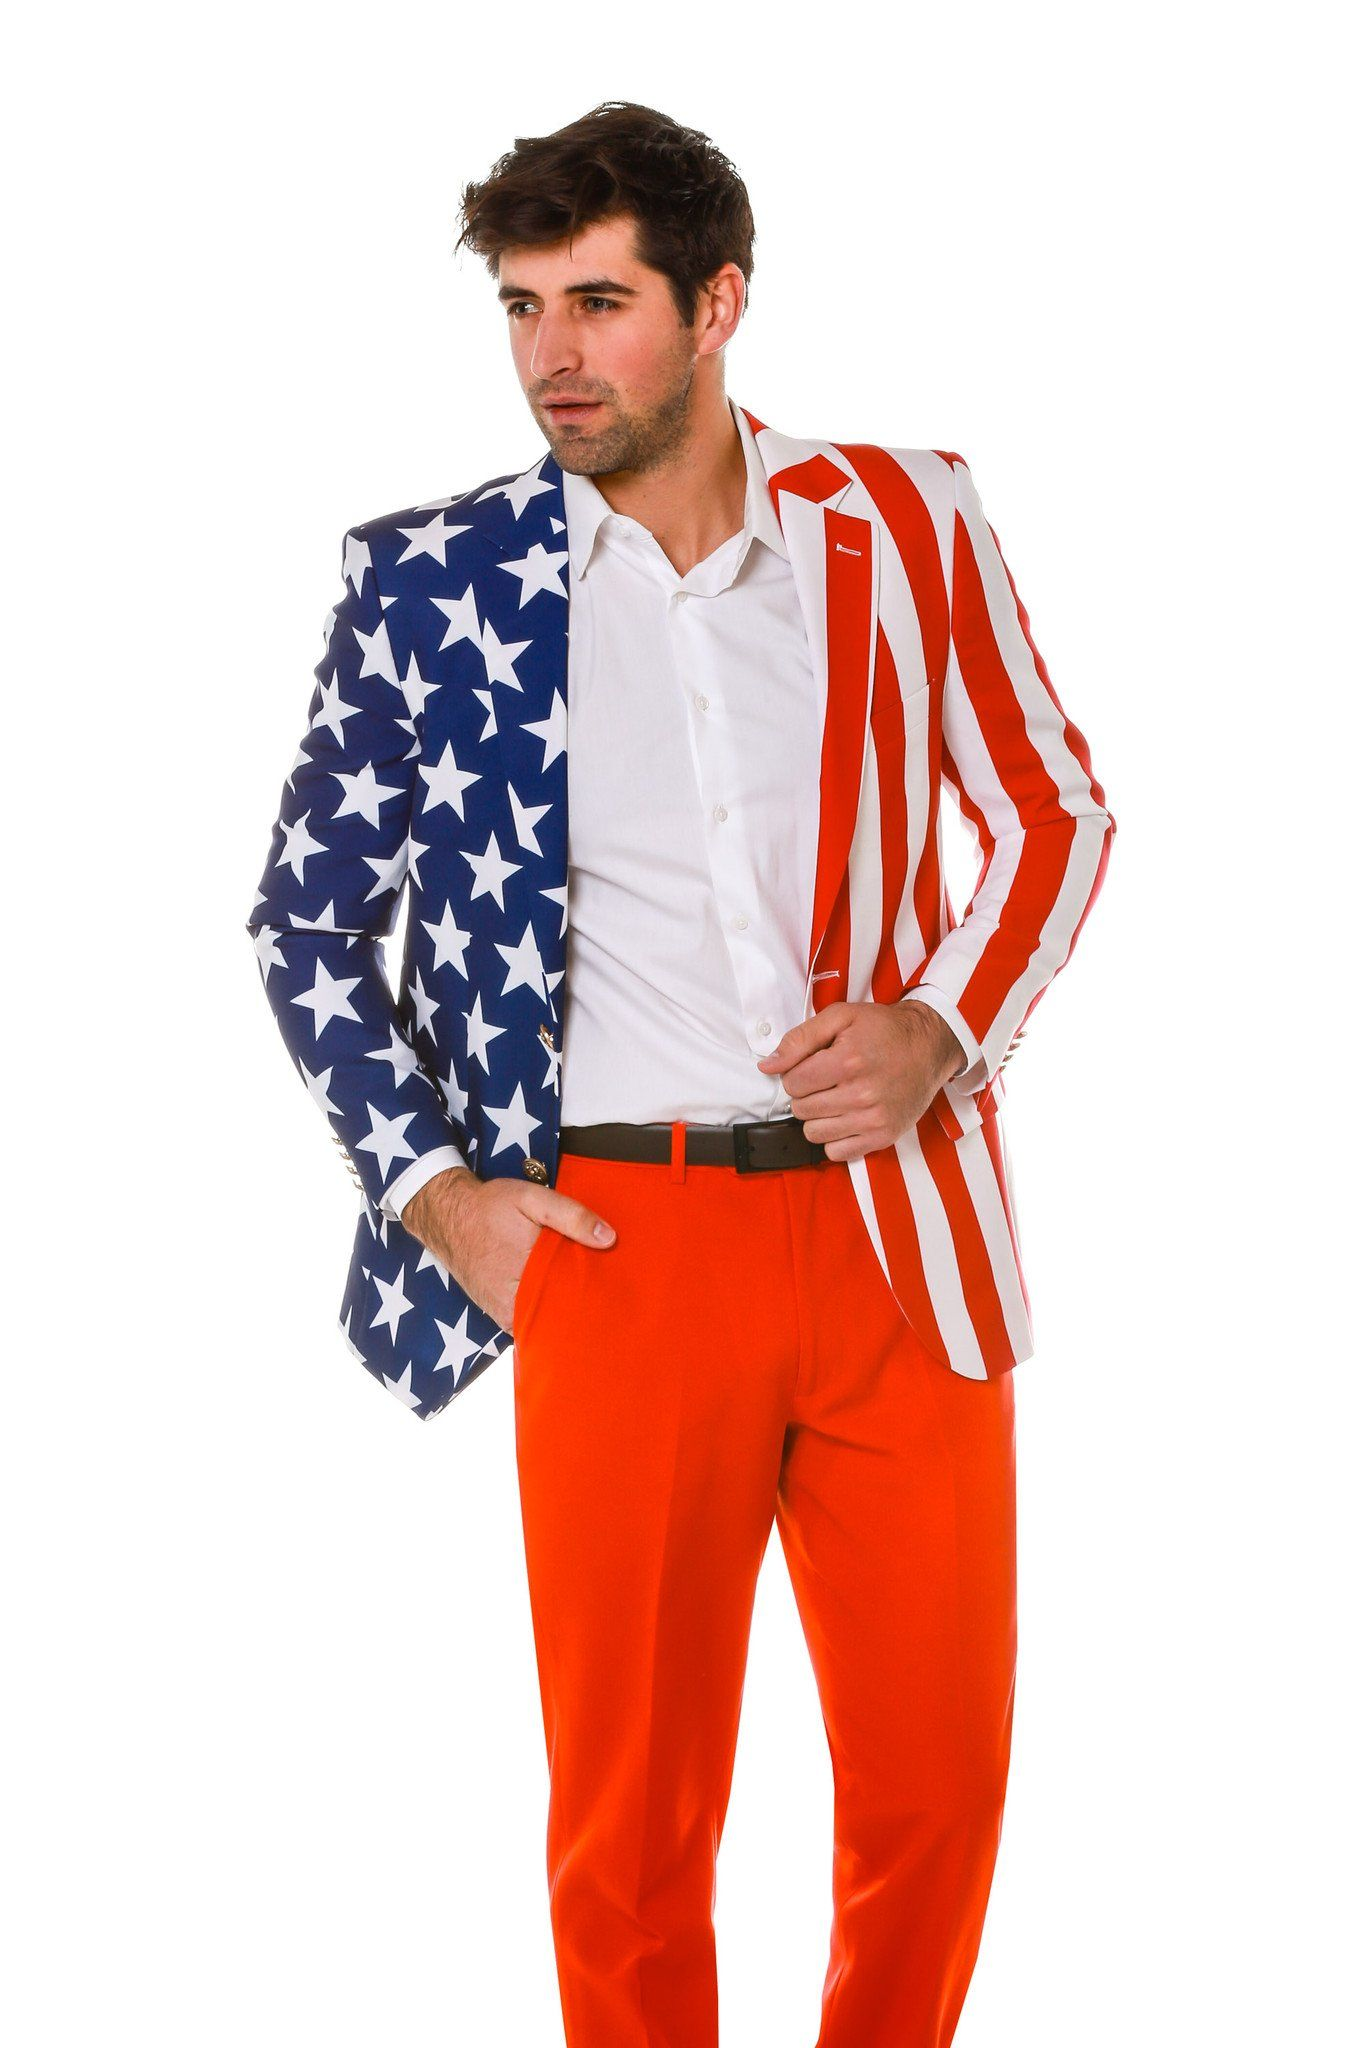 Introducing The Tommy J American Flag Blazer By Shinesty This Red White And Blue Jacket Is Made Of American Flag Suit American Flag Clothes Tiny Black Dress